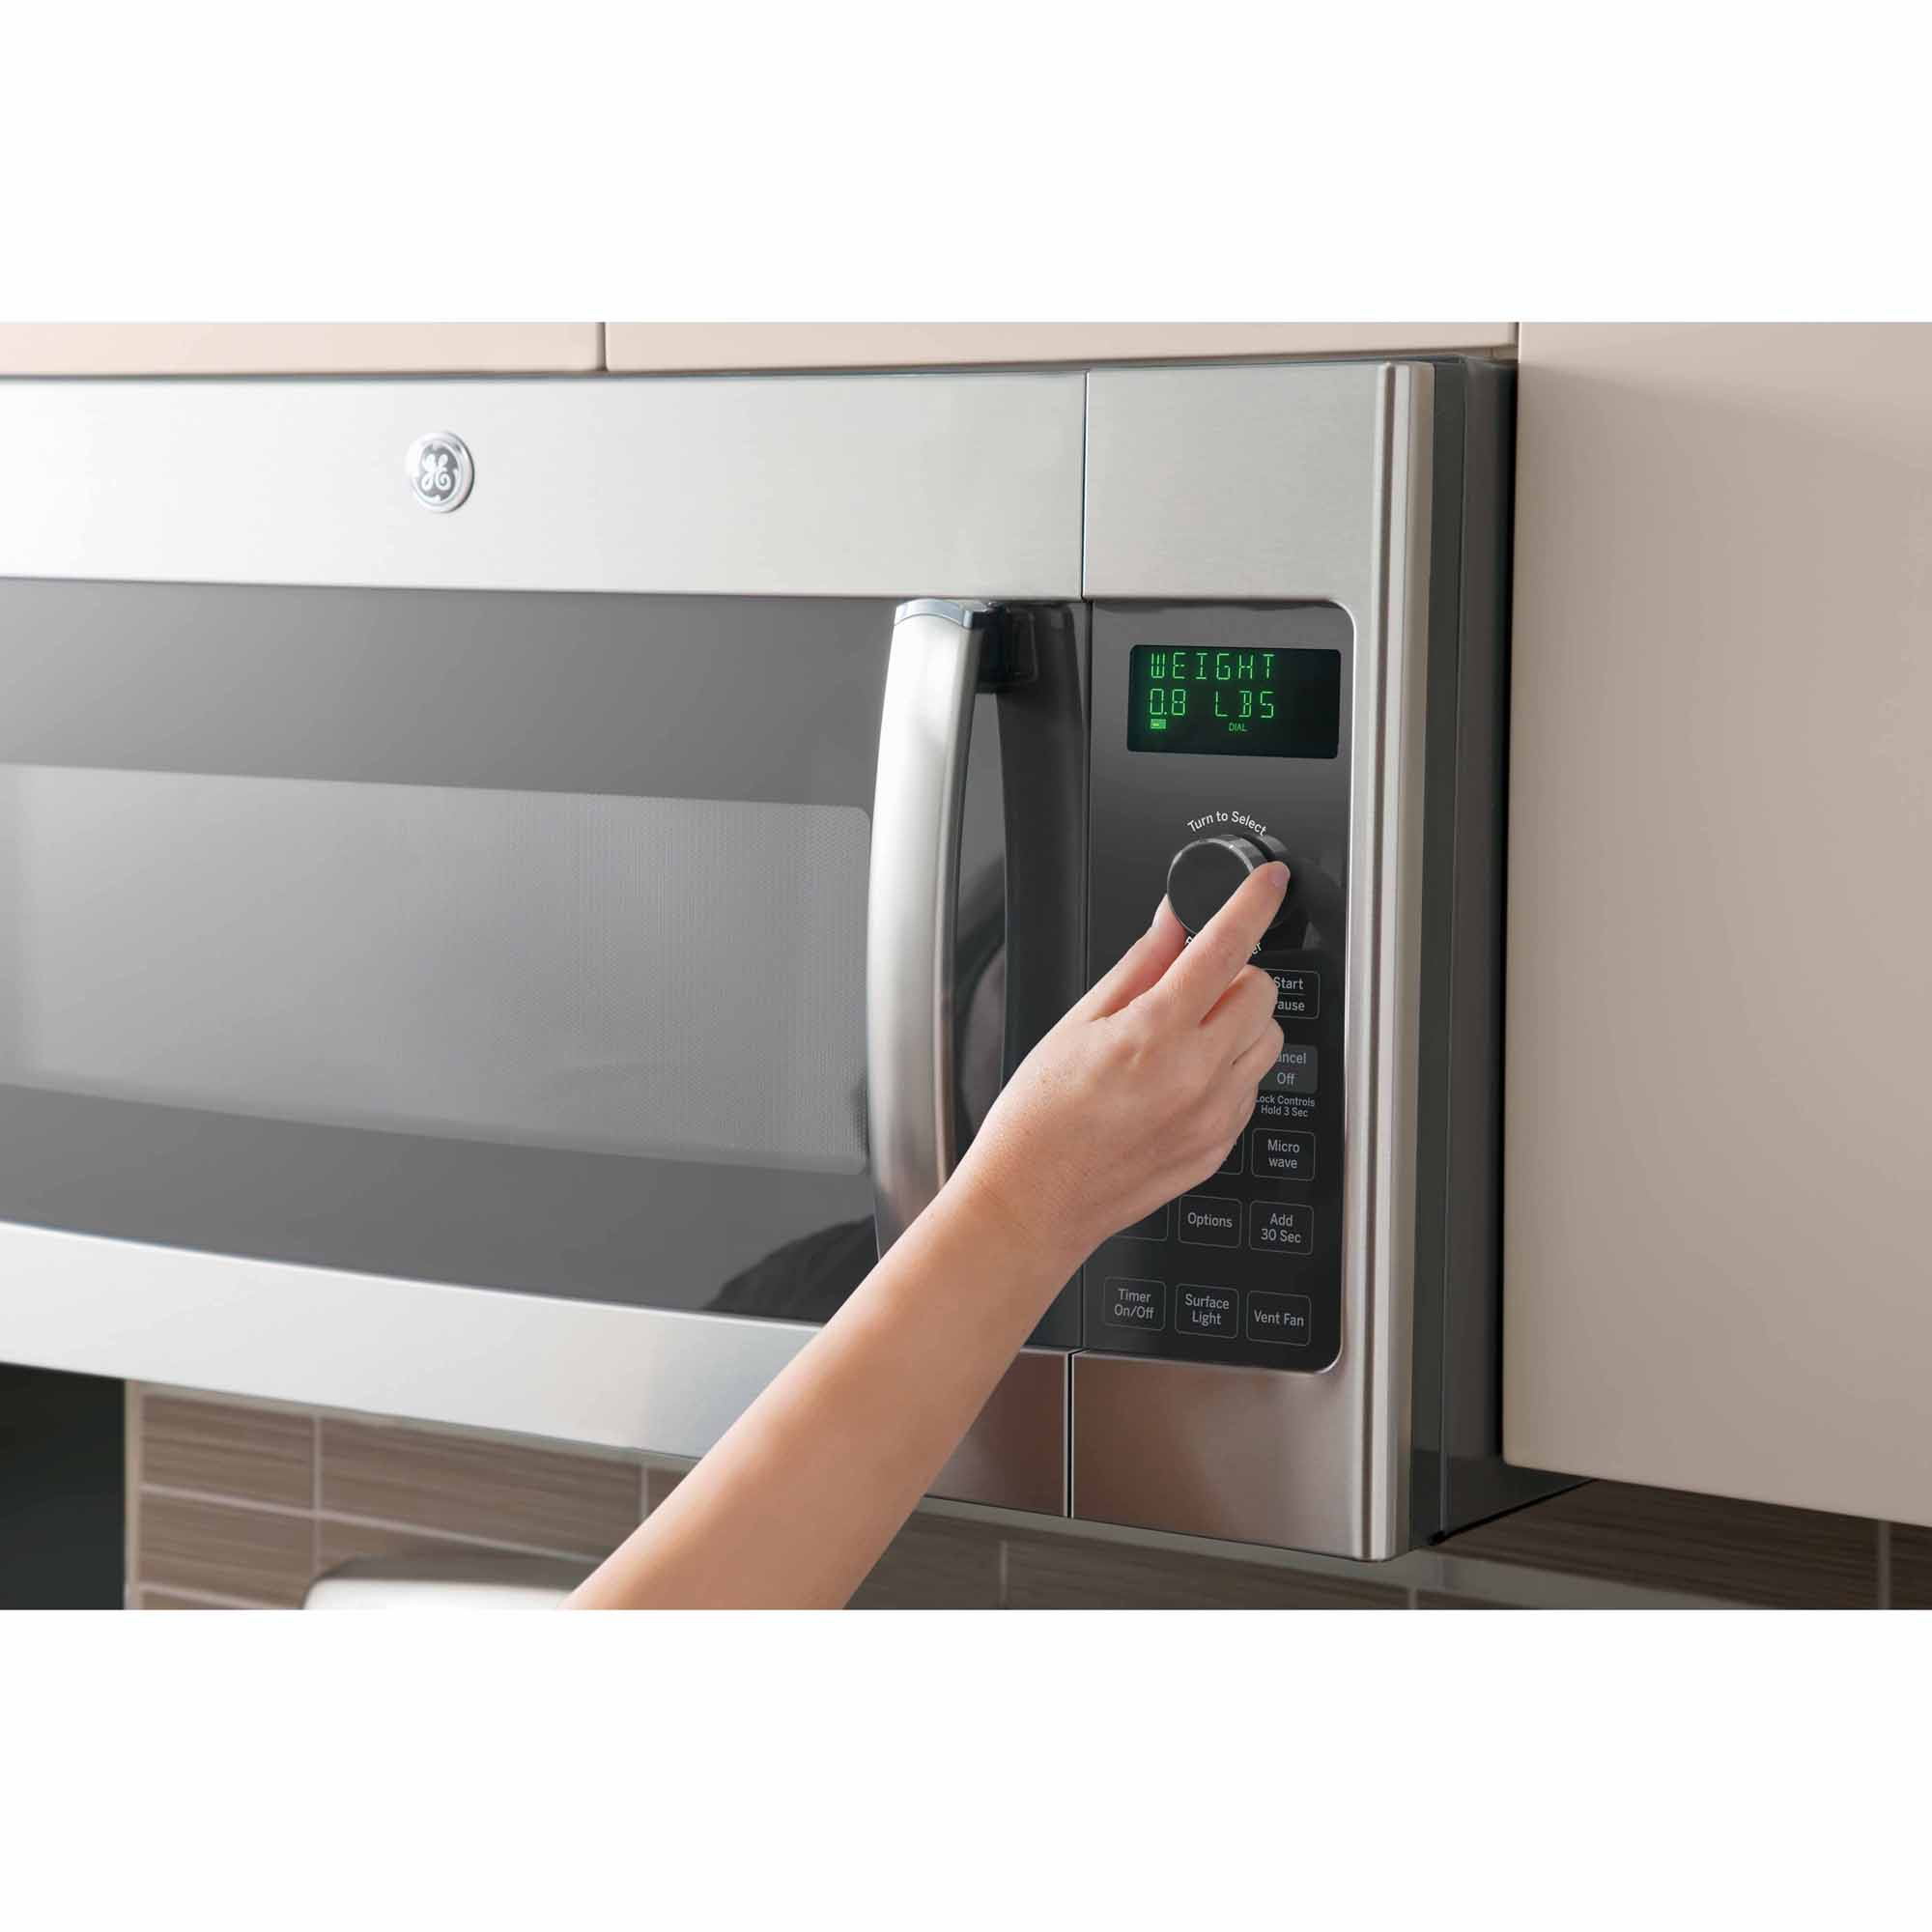 GE Profile PVM9179SFSS 1.7 cu. ft. Over-the-Range Microwave Oven w/ Convection - Stainless Steel